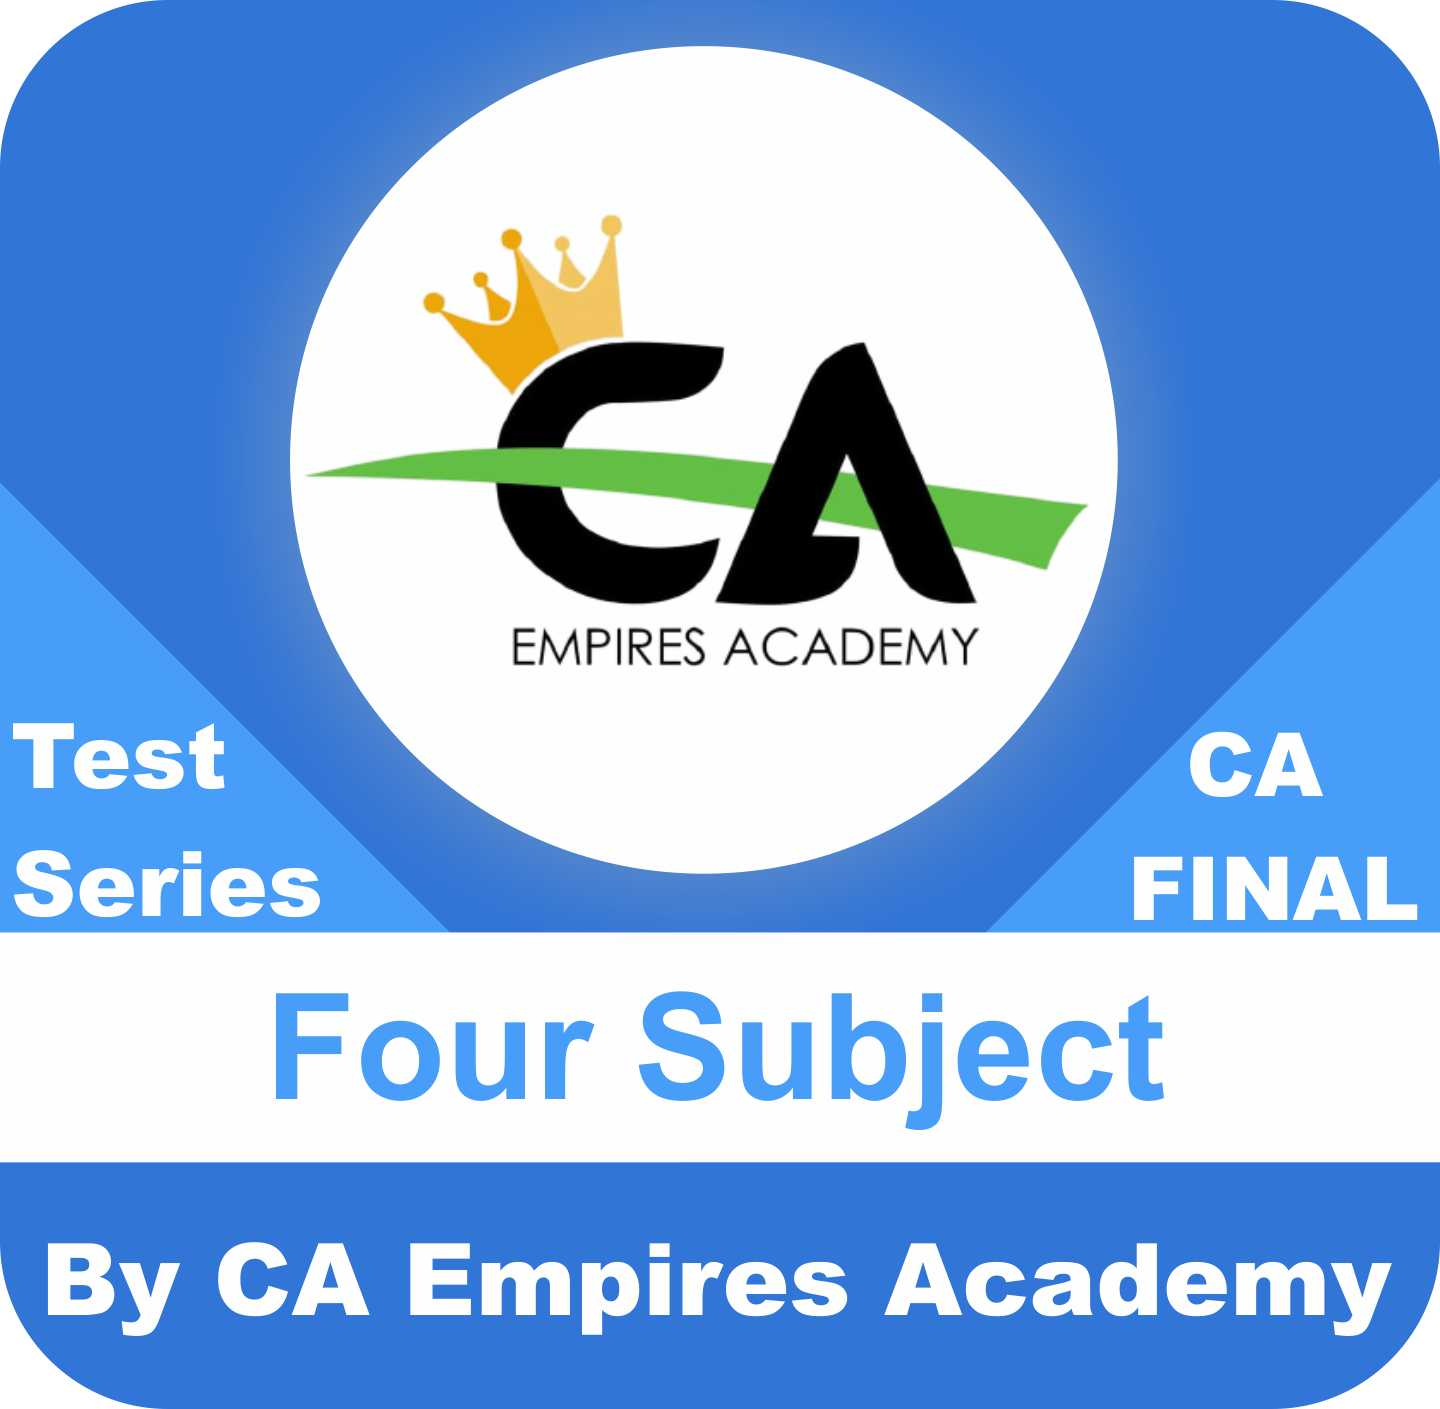 CA Final Any Four Subject Test Series in Bronze Plan by CA Empires Academy